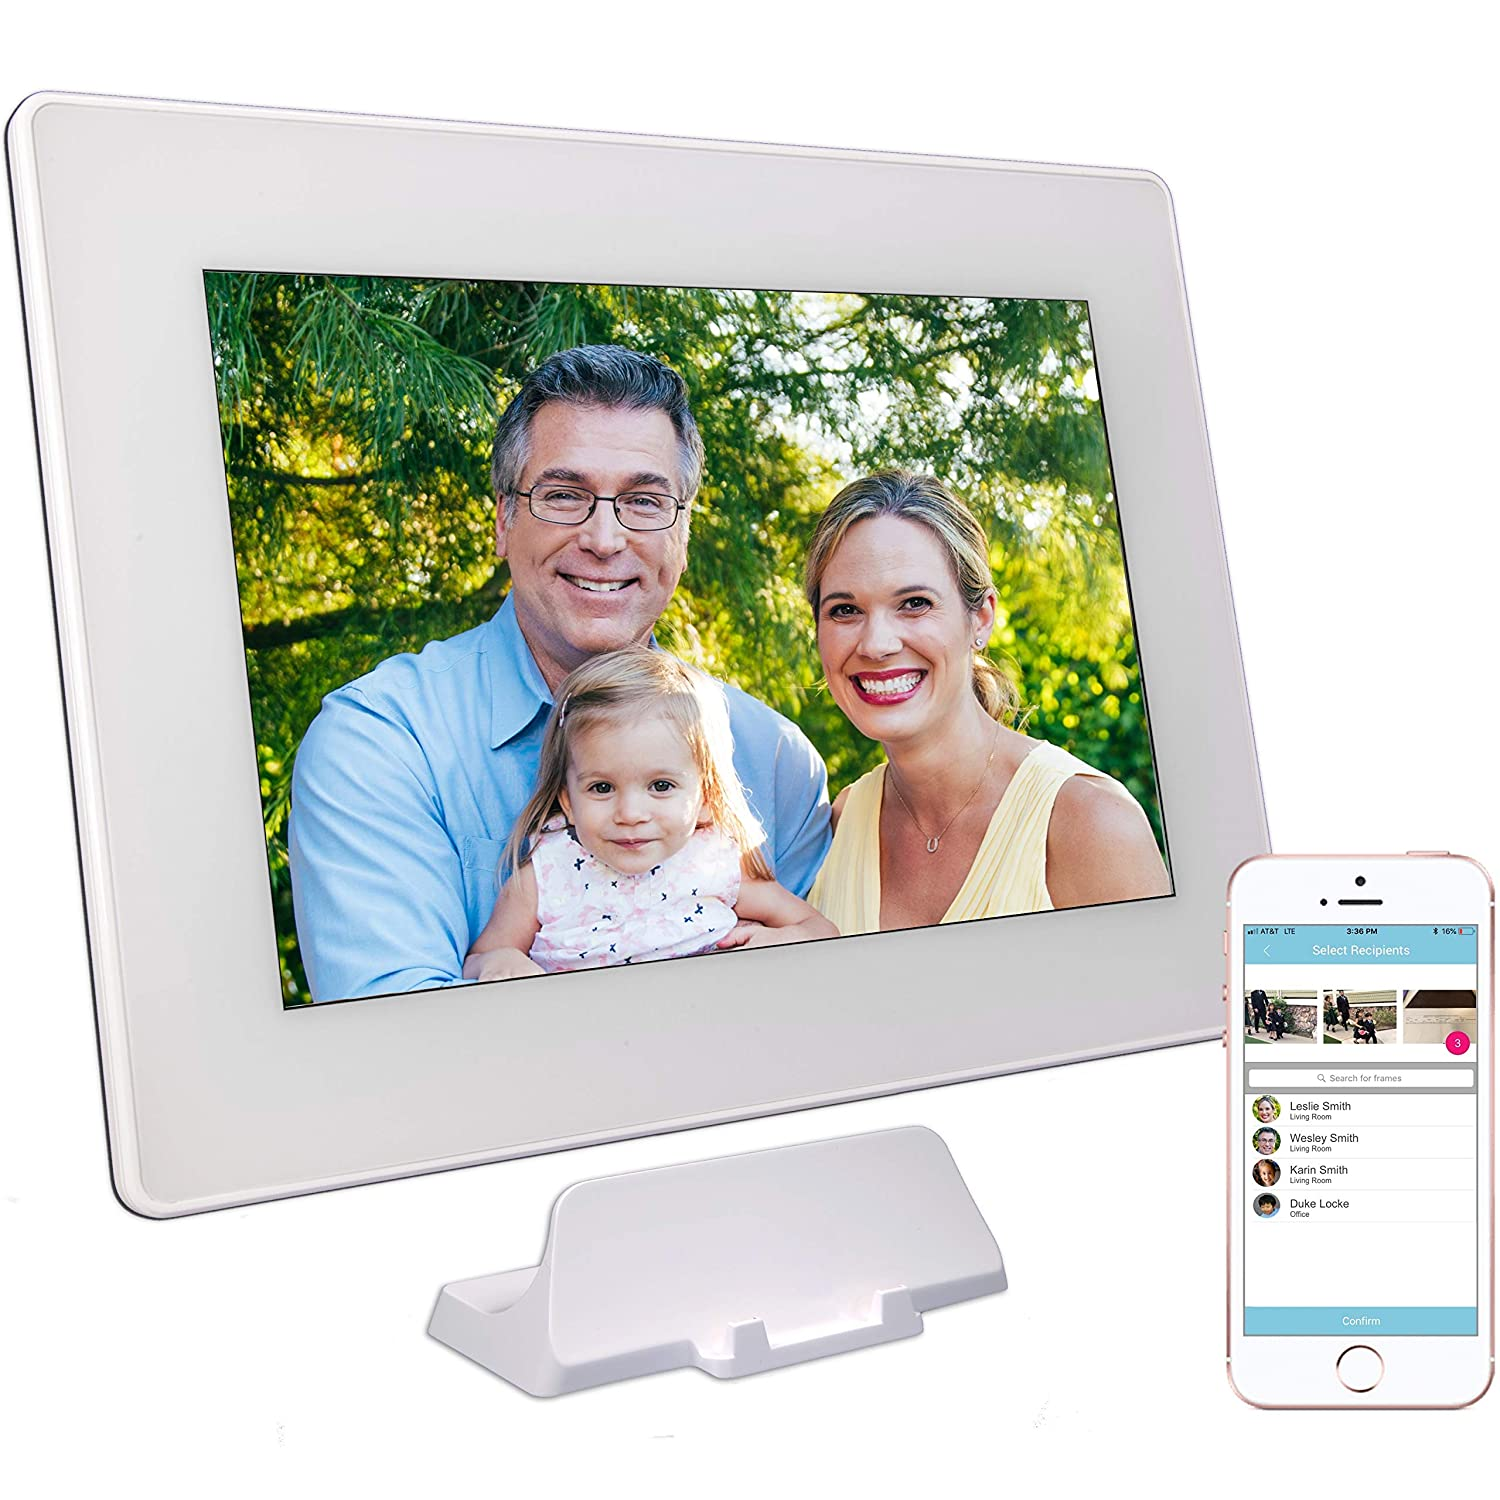 PhotoSpring (16GB) 10-Inch IPS, WiFi, Touchscreen, Battery, iPhone & Android App, Photo & Video, Digital Picture Frame (White) 15,000 photo capacity PS101-16